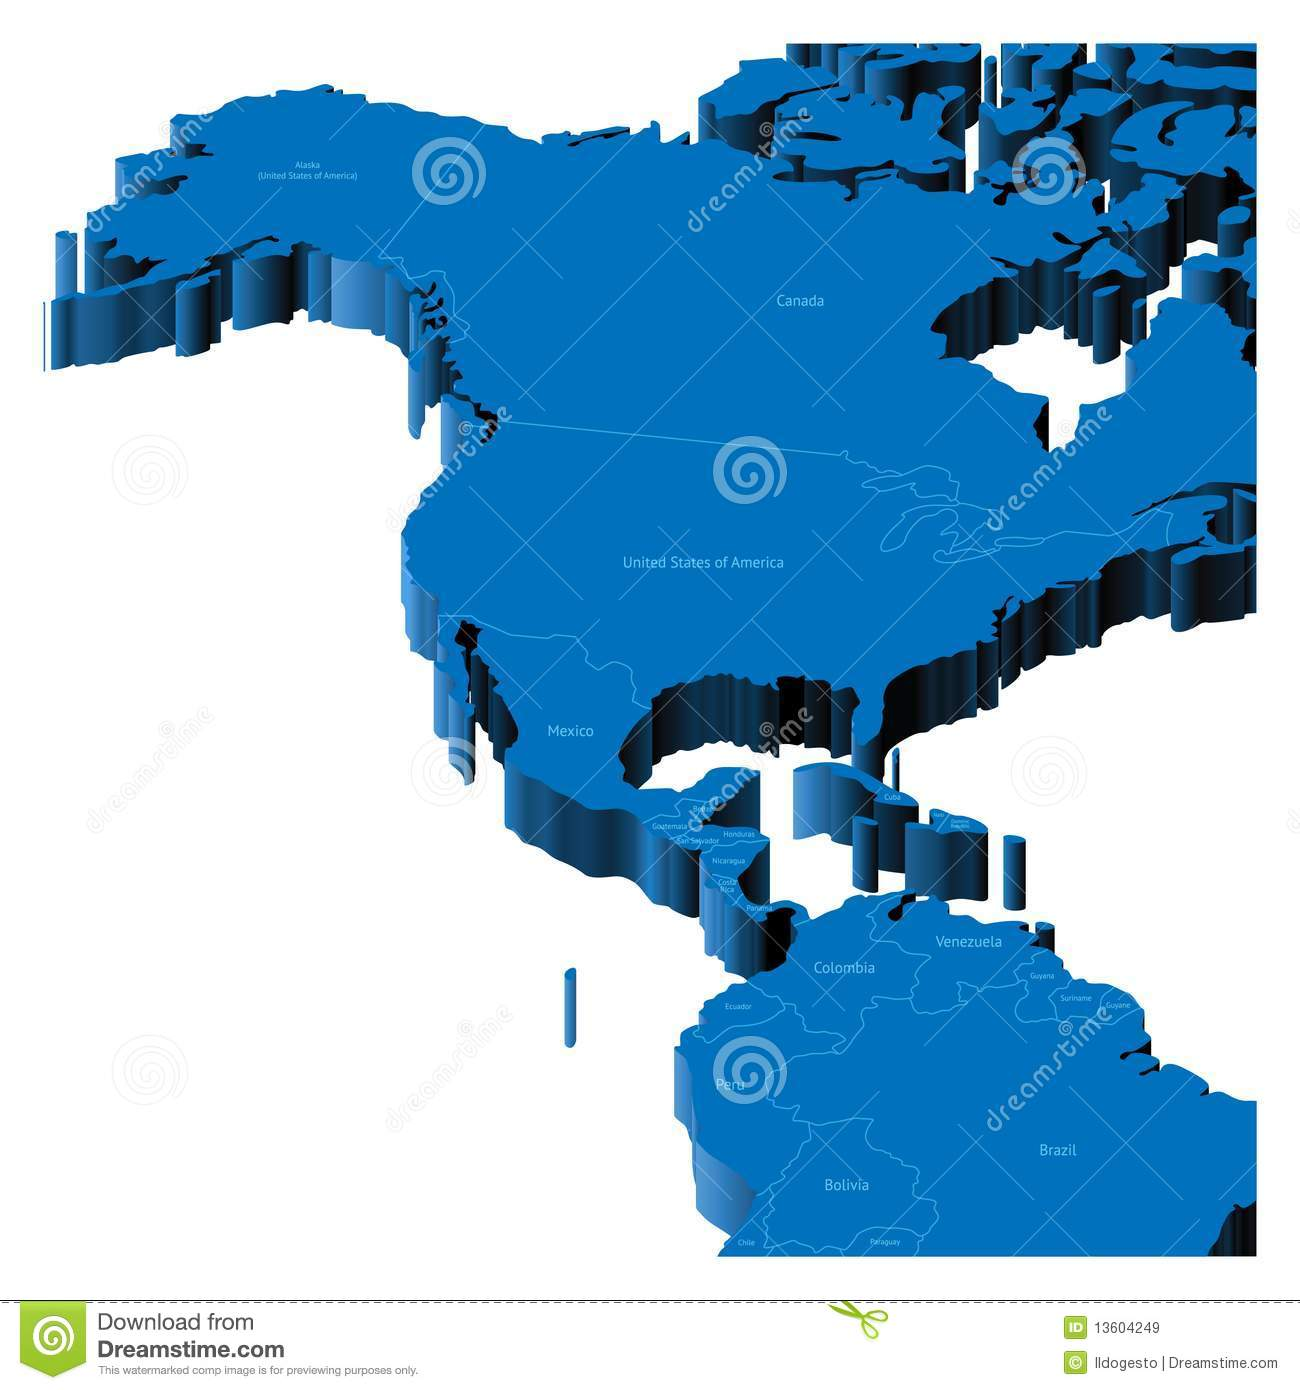 Usa Map With State Names Only On Usa Images Lets Explore All - 3d map usa states